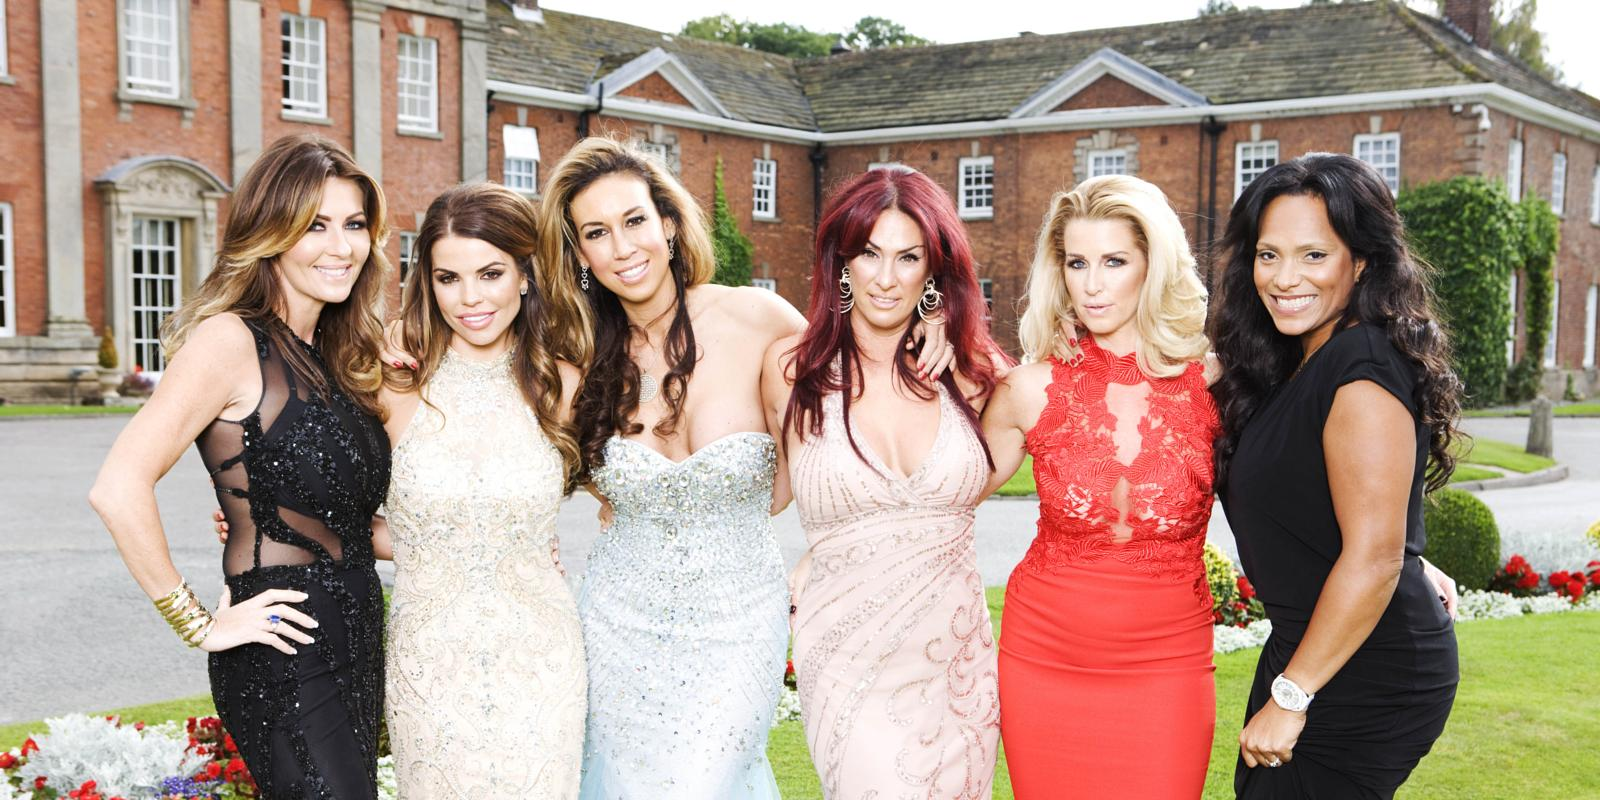 Real housewives of cheshire meet itvbe 39 s new reality stars for Chesire house